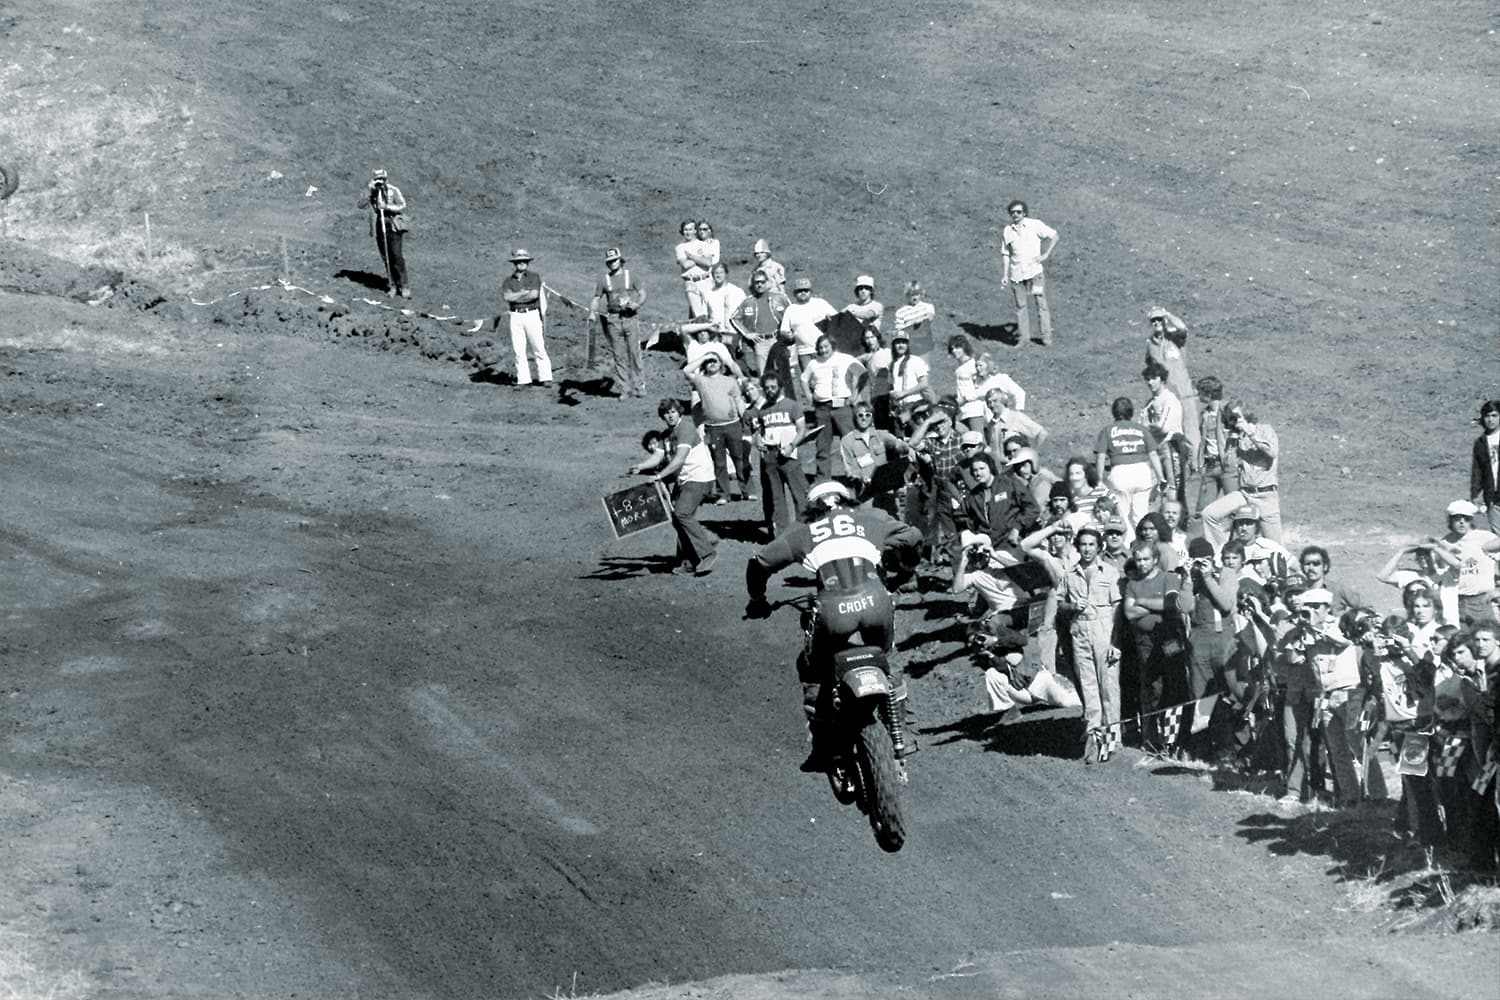 1975 Trans-AMA race at Northern California's Carnegie Cycle Park